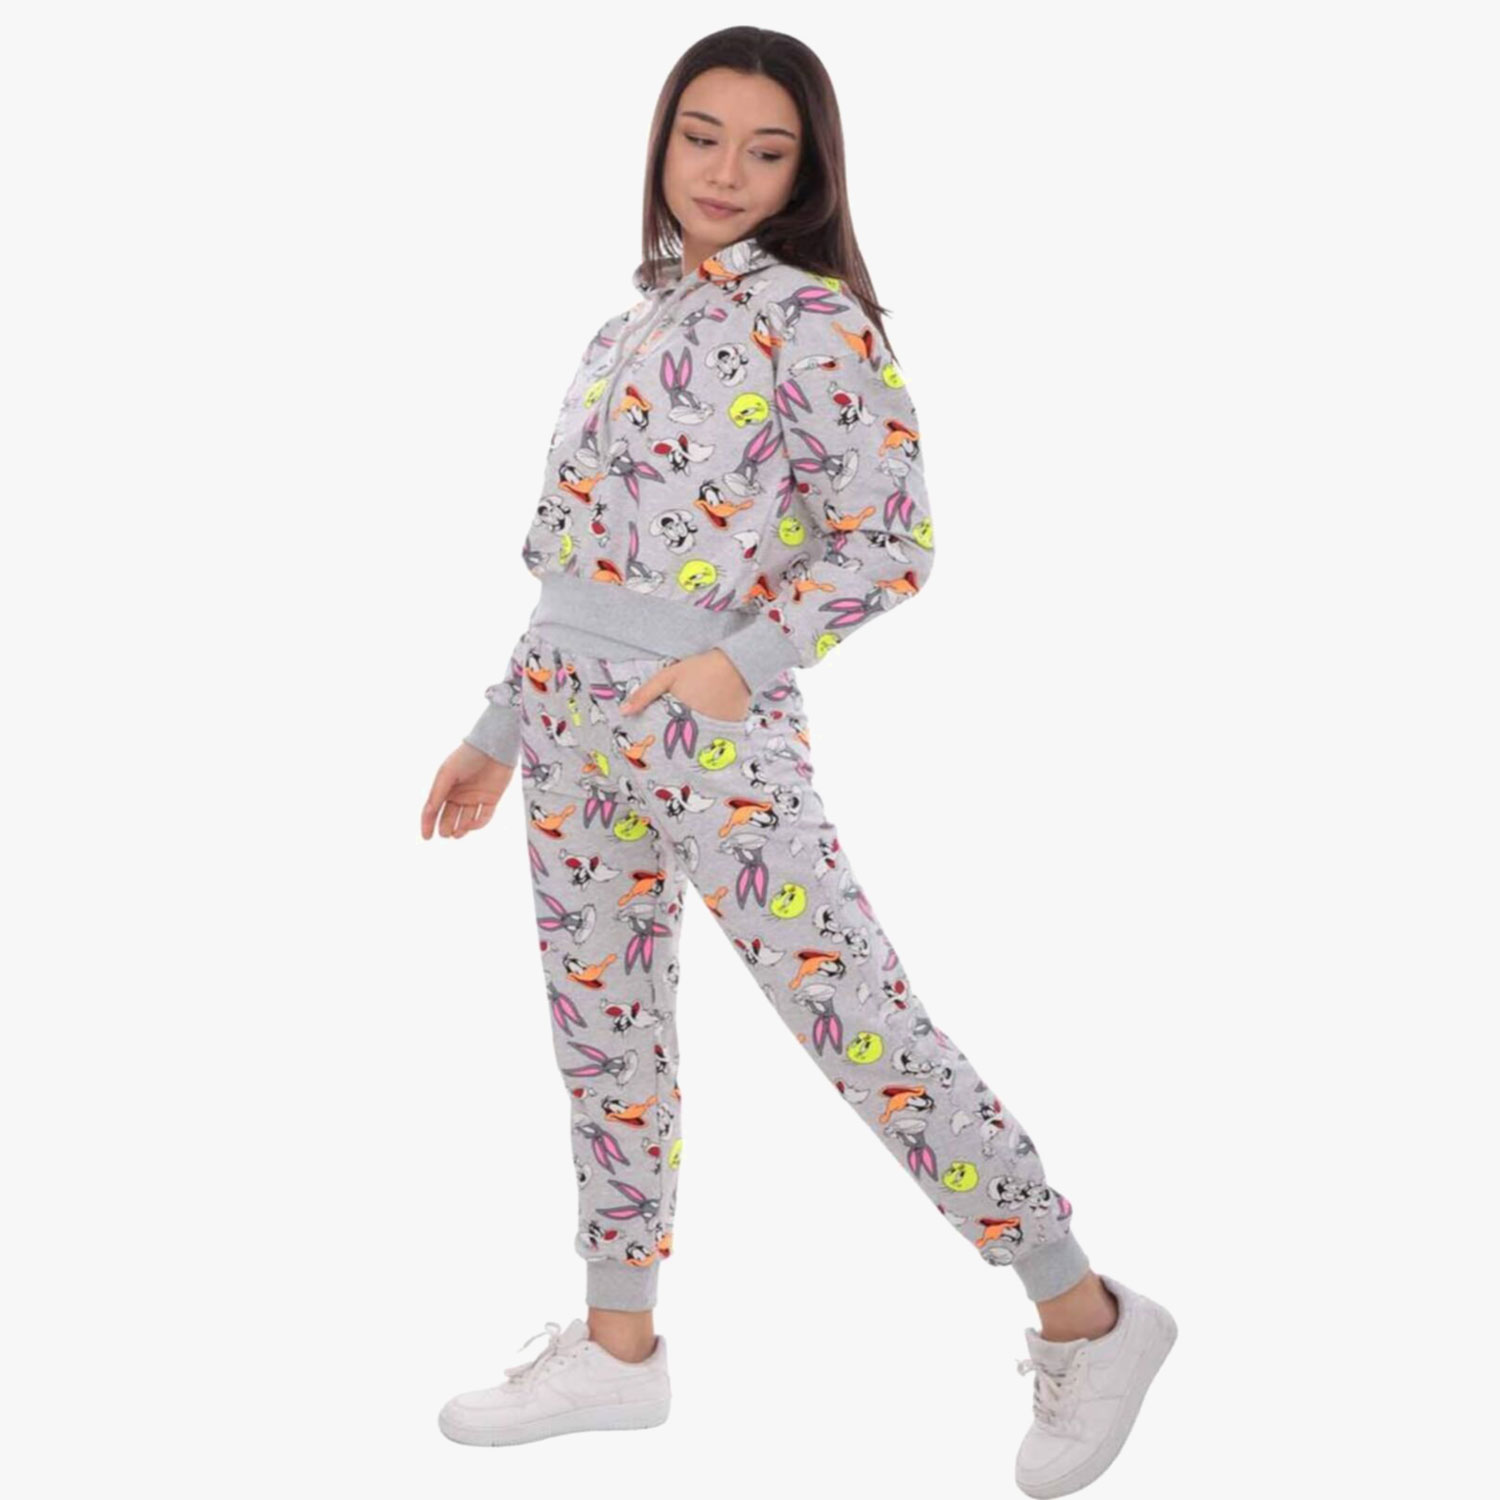 It is hooded. made of combed cotton fabric. printed Cartoon Character on gey fabric The waist and cuffs of the sweatpants are elastic. 2 side pockets. The sweatpants have an elastic waist.